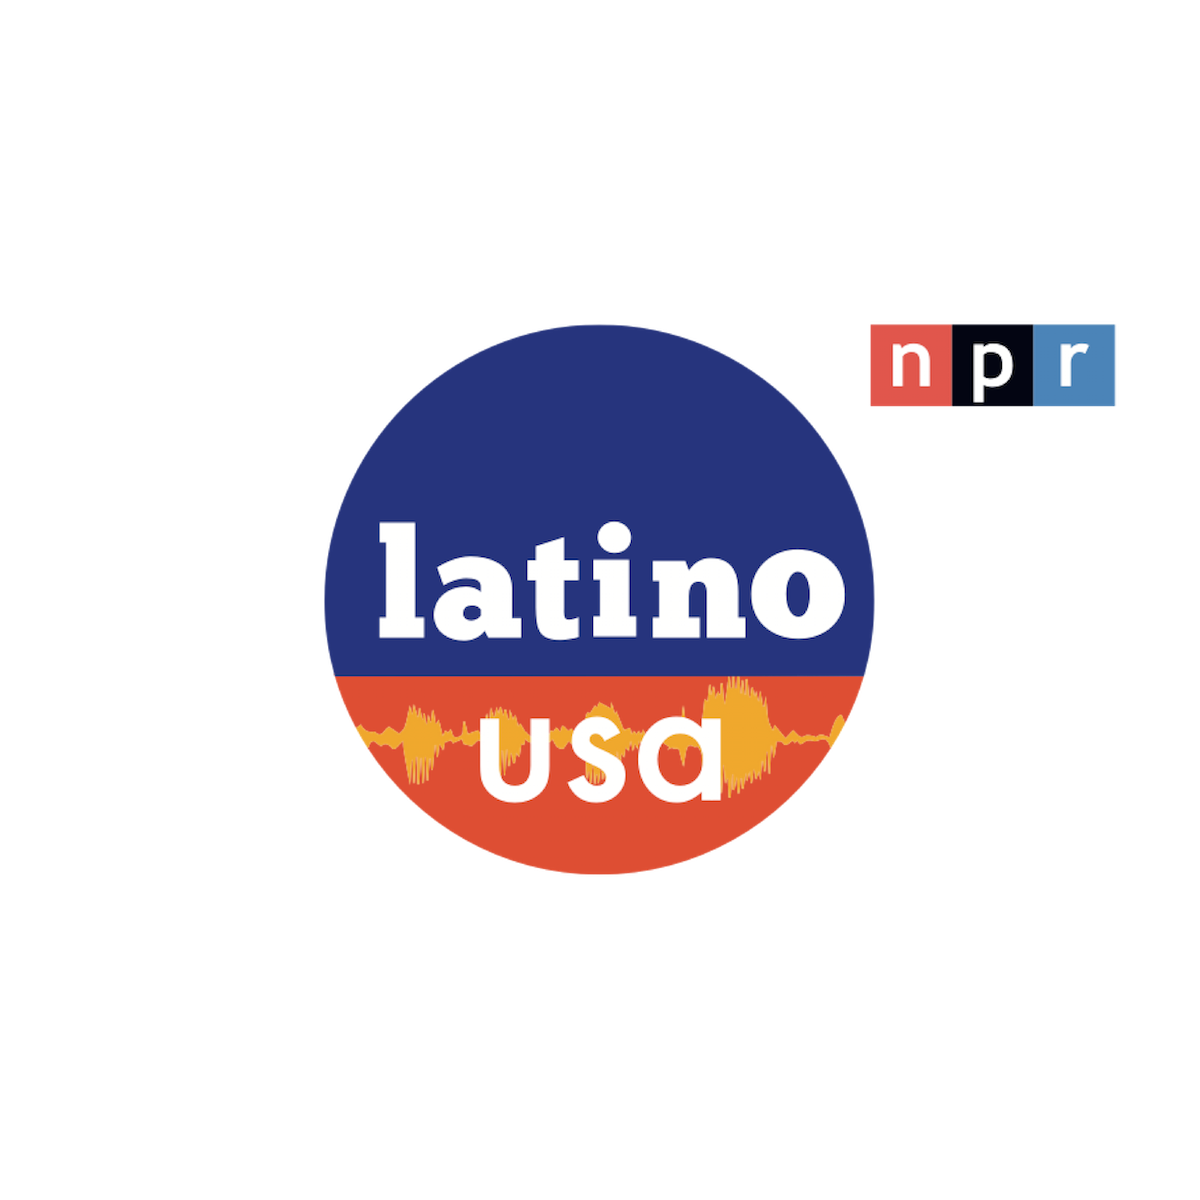 Premeditated Mediation: Violence Interrupters for NPR's Latino USA -